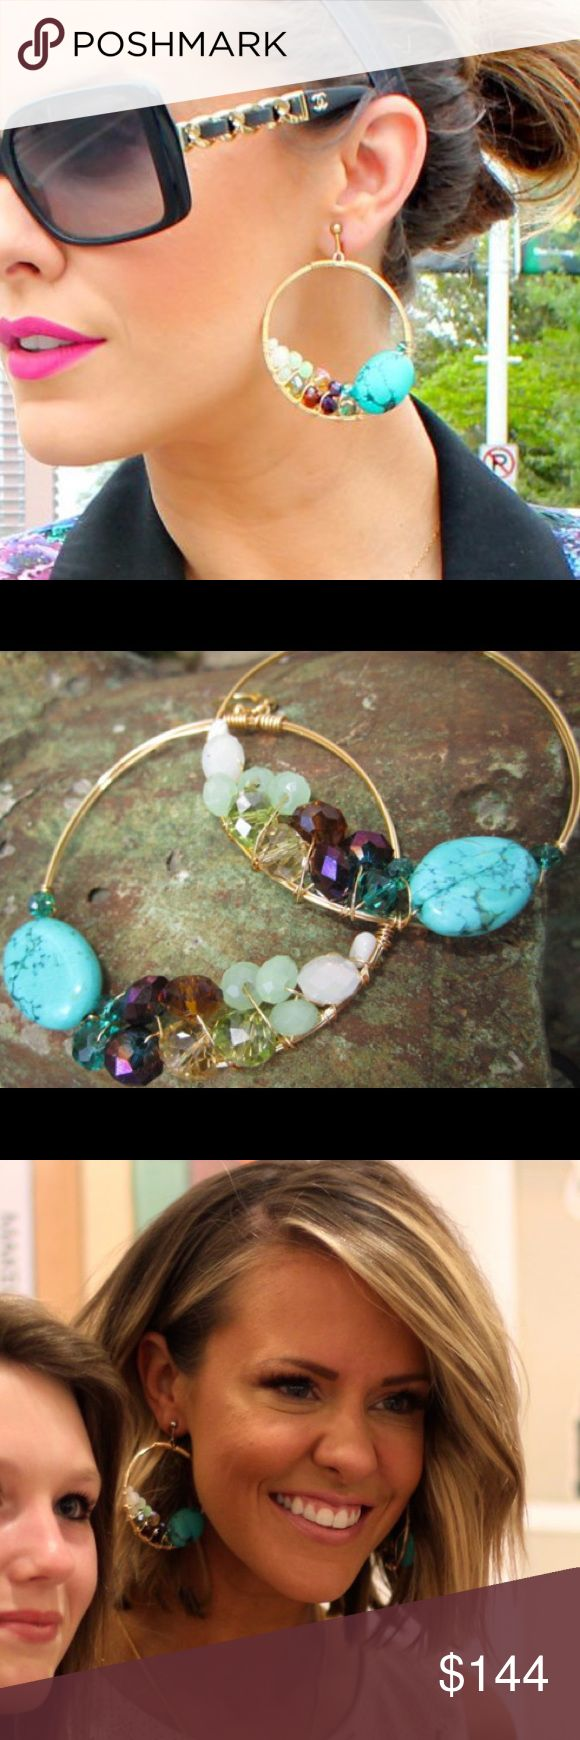 Rory Ashton mermaid earrings turquoise/crystals **** would LOVE to trade for Vintage GUCCI BAG ONLY***Rory Ashton Mermaid signature Cluster hoop collection Earrings,(handmade,gold plated wire hoop,turquoise &faceted crystals).new:RA giftbox/2014 series/still current.designer earrings in 100+us Locations.purchased in her Etsy days when was just starting out,collector's item,Can supply proof payment$144each.had purchased 2(loved them).never worn.-true gypsy inspired style,these earrings add…